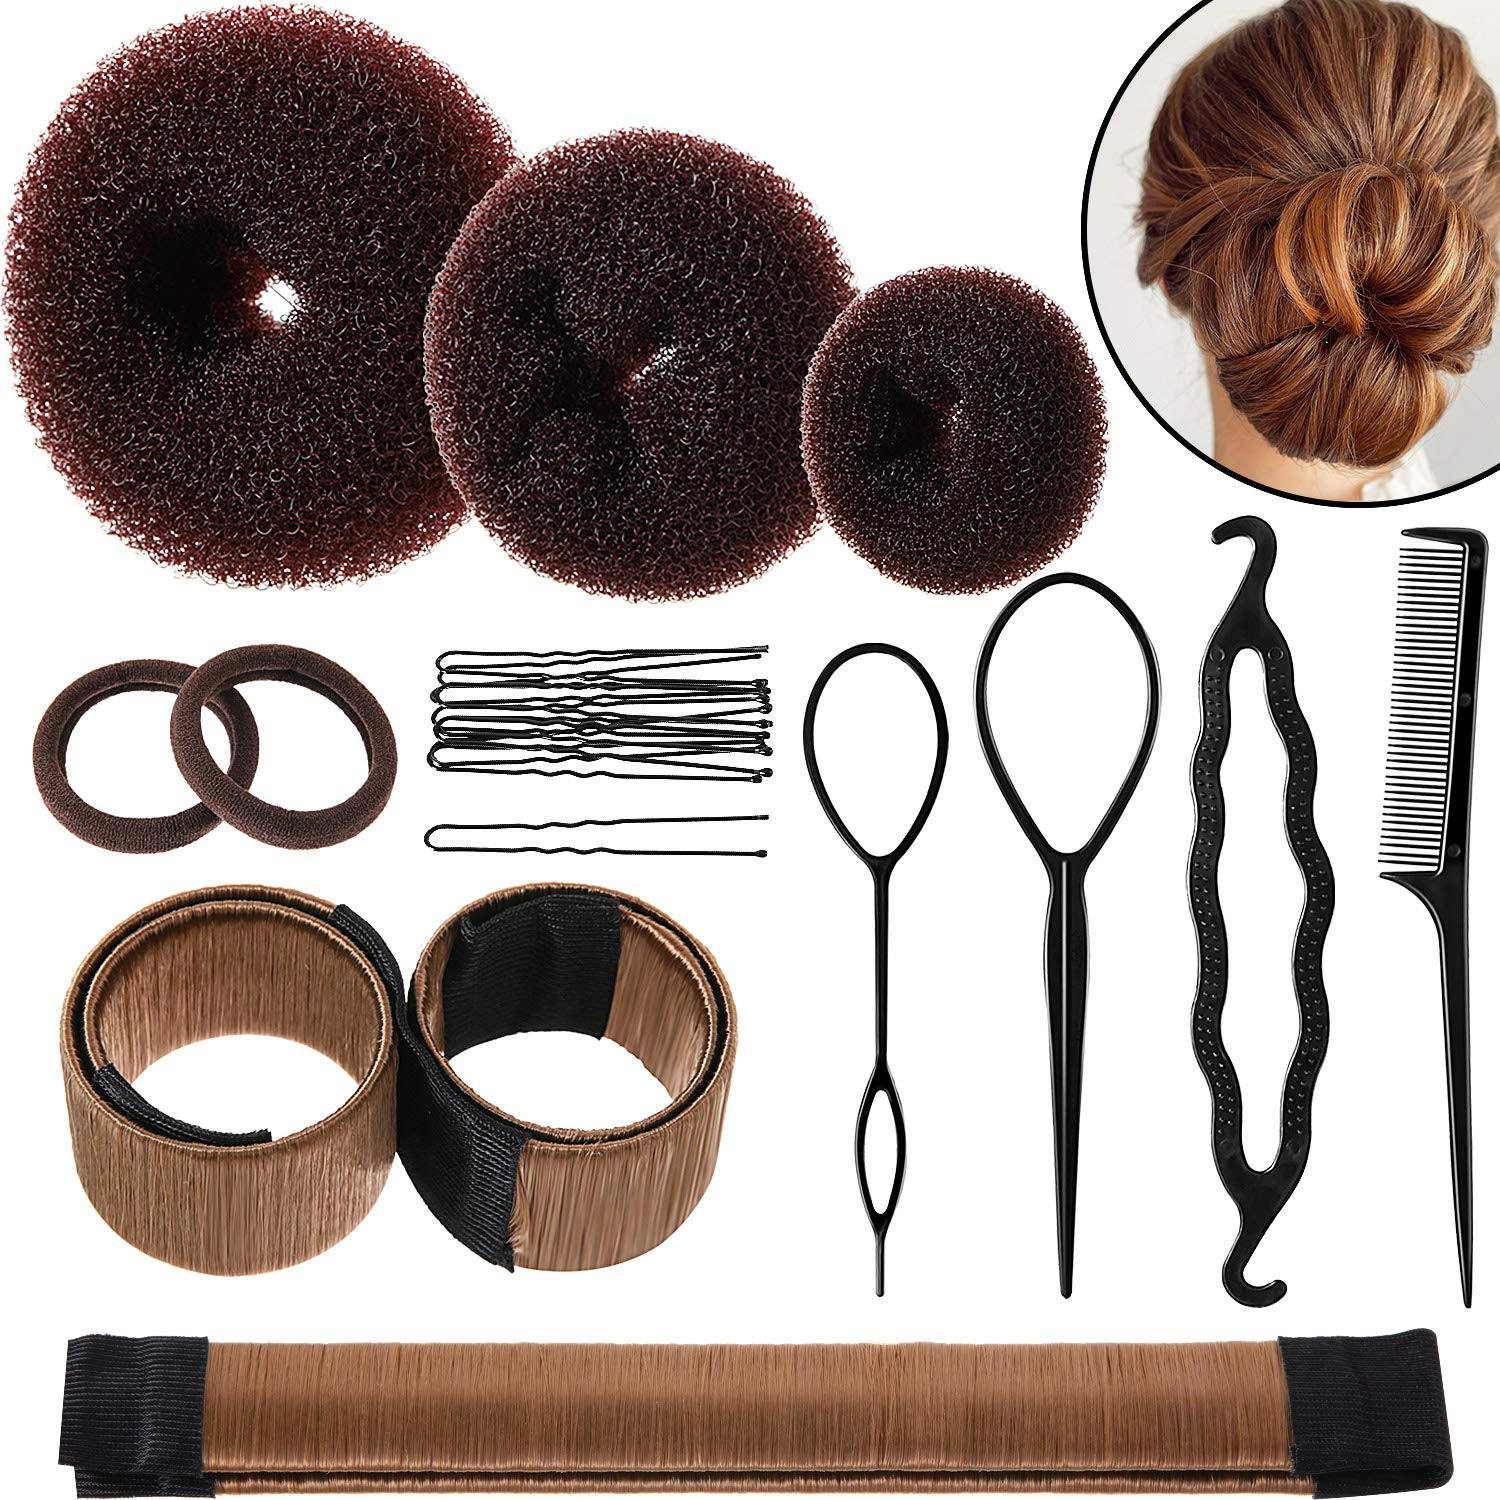 Hair Bun Shaper Set, Include 3 Pieces Hair Bun Donut, 2 Pieces Bun Marker, 4 Pieces Ponytail Hair Tool, 10 Pieces Bobby Pins and 2 Pieces Elastic Bands for Women Kids Hair Bun Maker Kit (Brown)